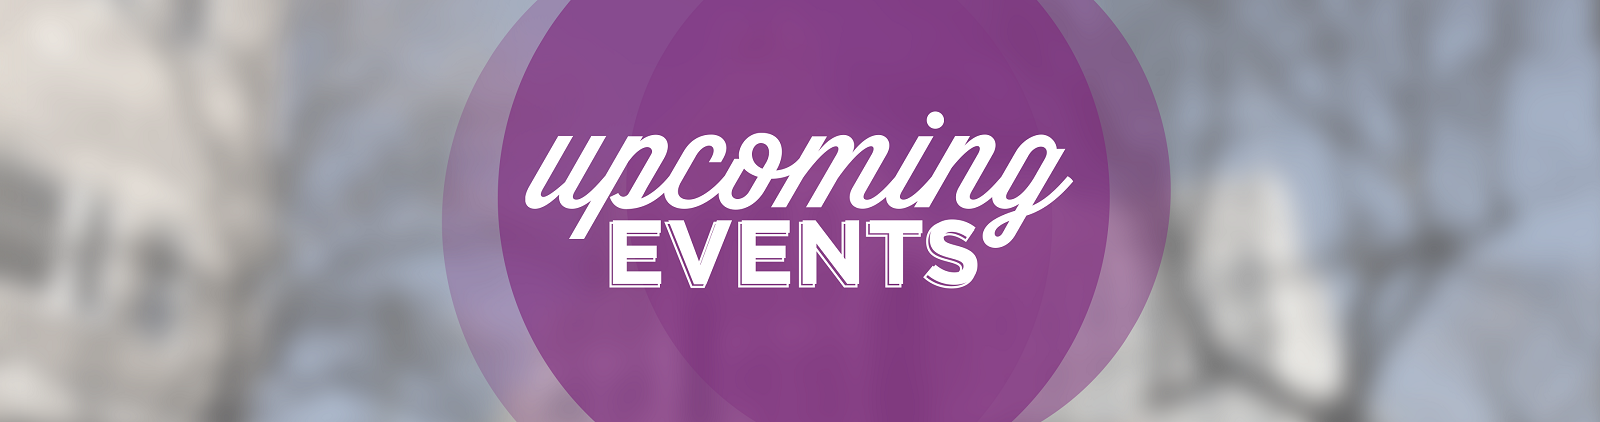 Upcoming_Events-Banner